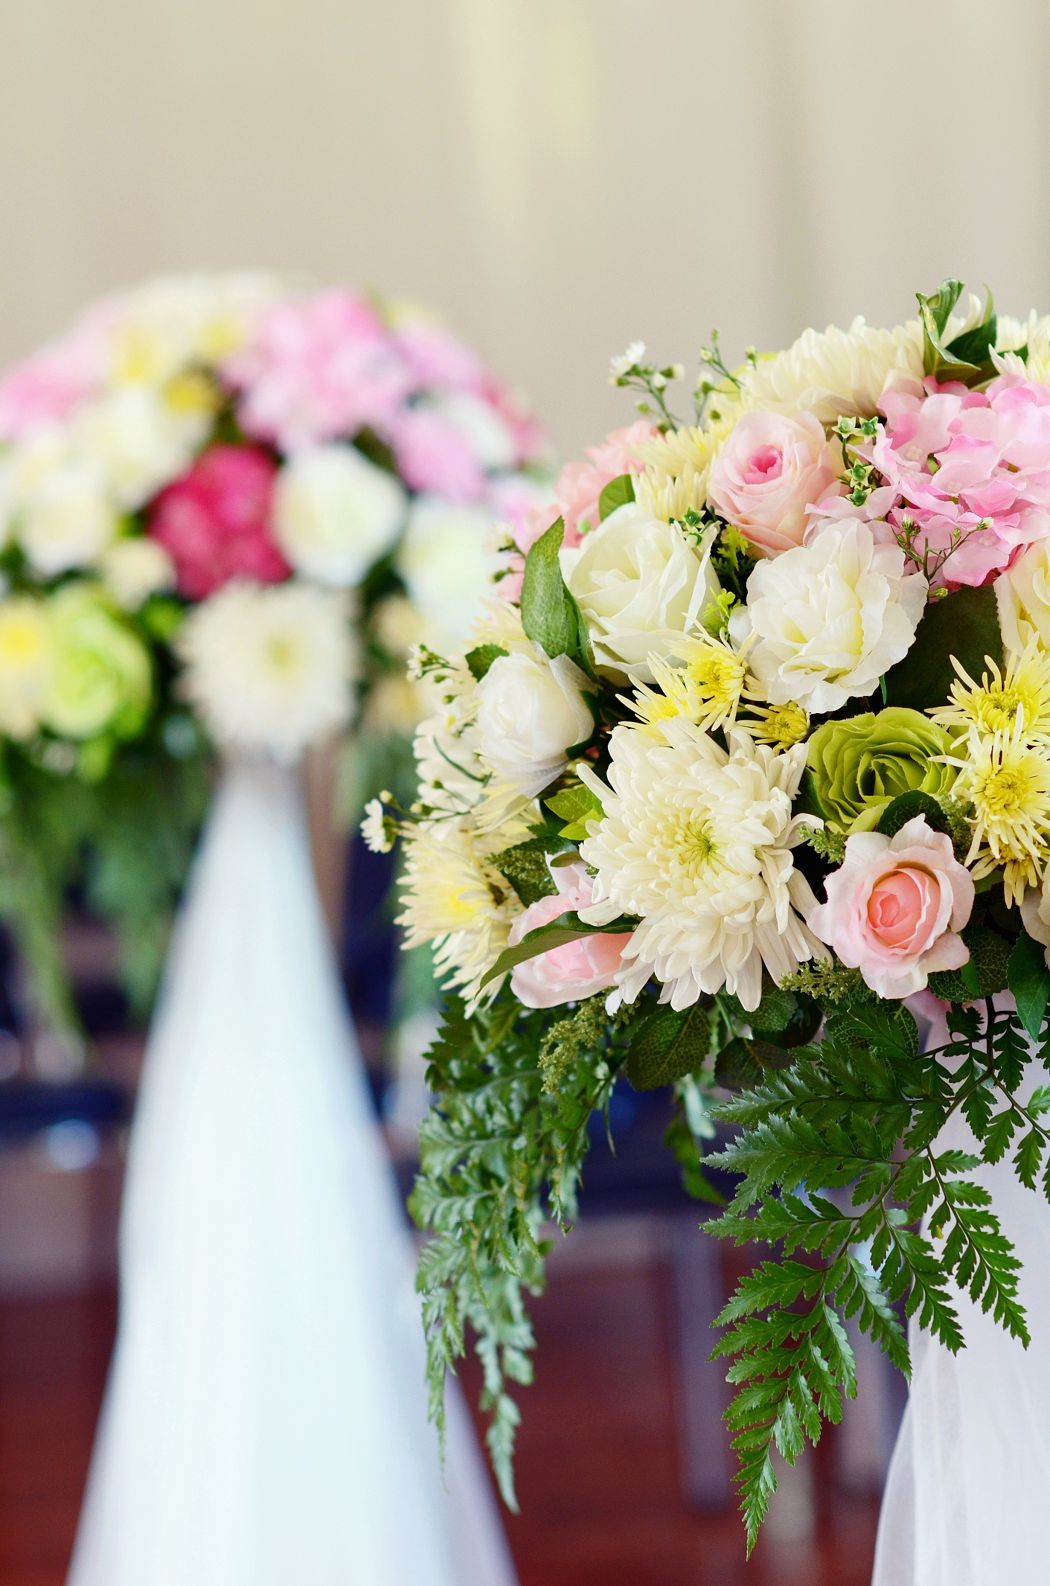 Flowers Add Color Style To The Wedding Life Newspressnow